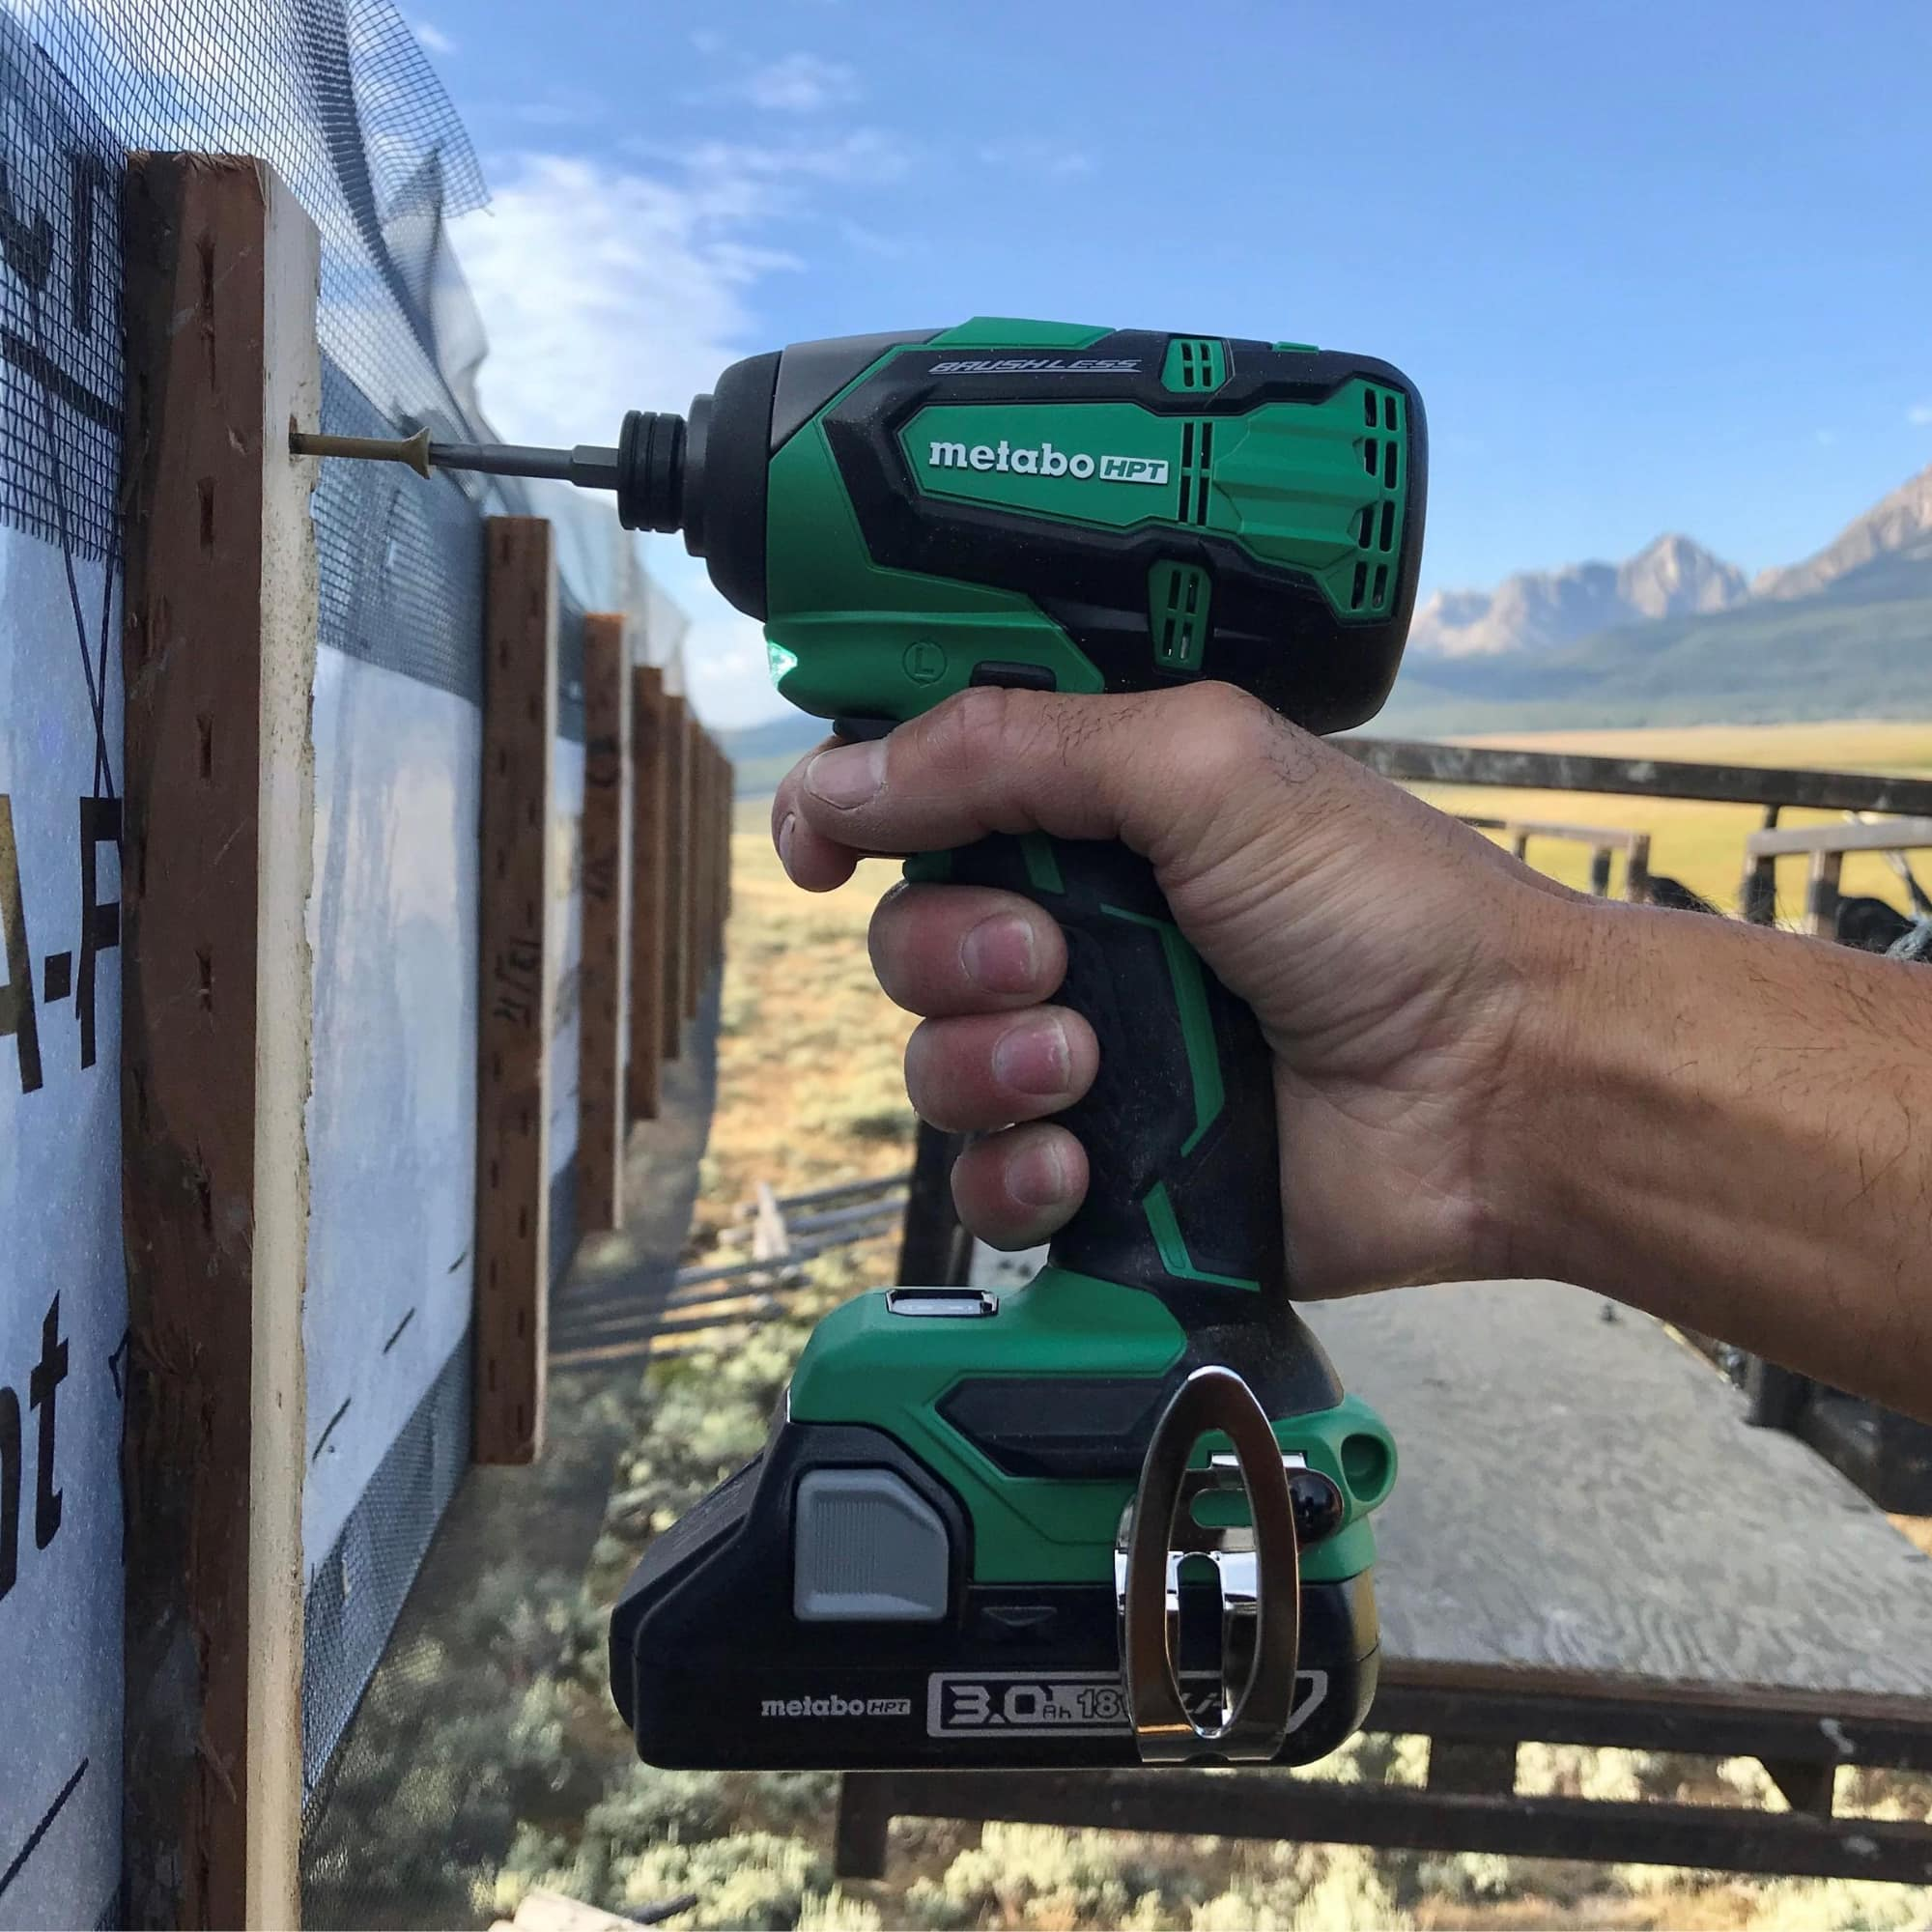 18V Impact Driver action